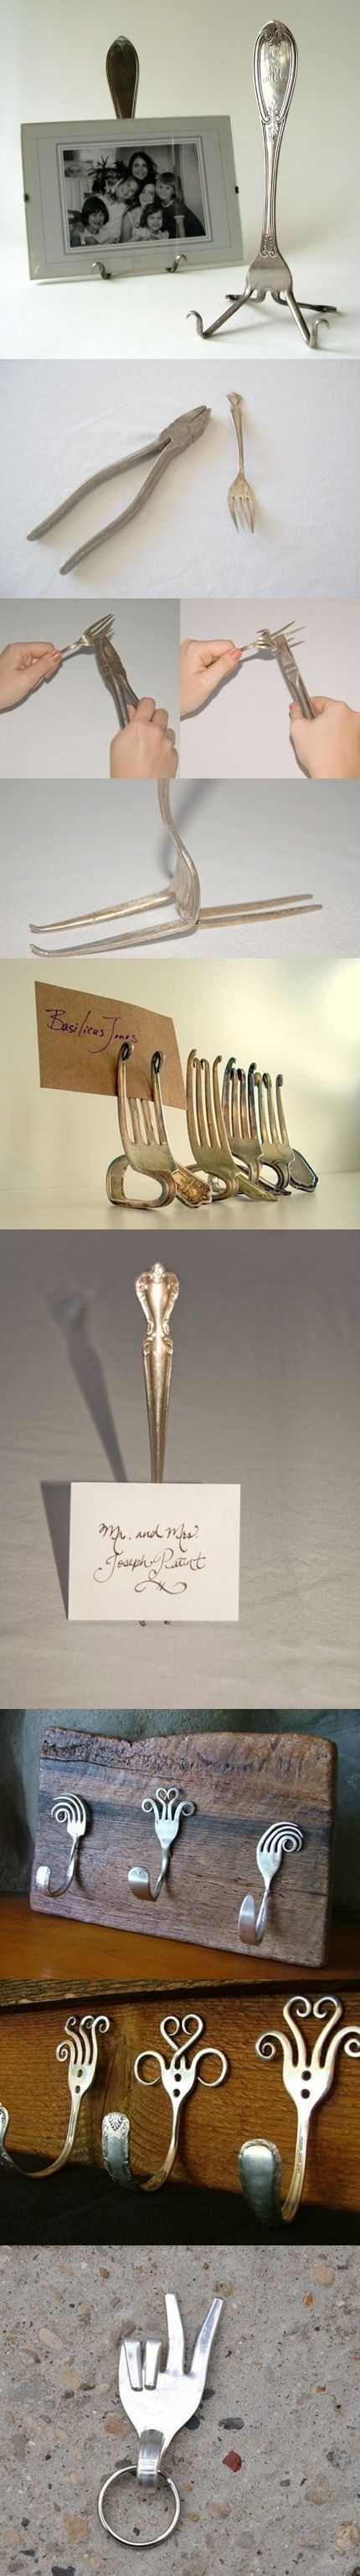 DIY Fork Art Scour up some old forks and use a pair of pliers and elbow grease to form them into whatever shape you like! Here's some inspiration: http://doitandhow.com/category/recycle-it/